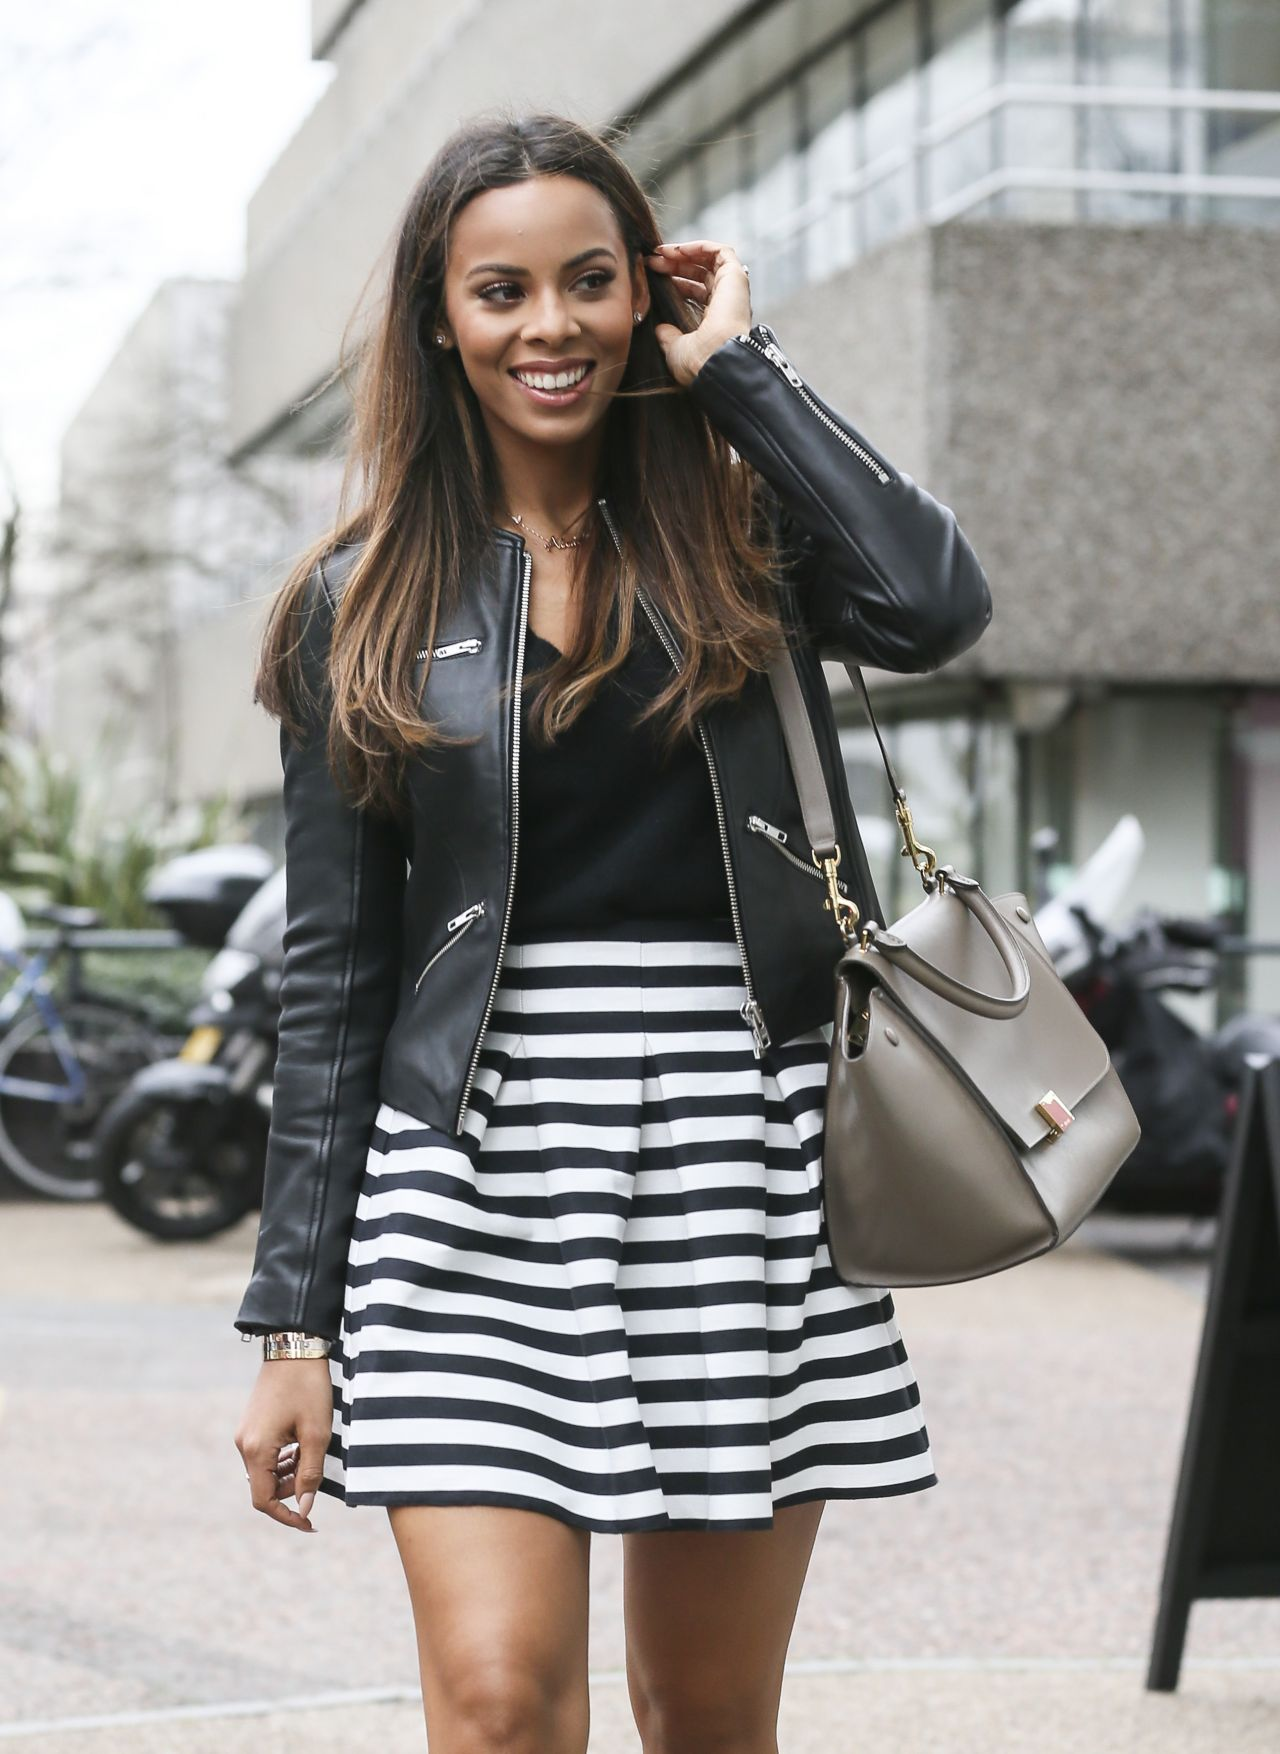 Rochelle Humes (Wiseman) - Leaves the London Studios, January 2015